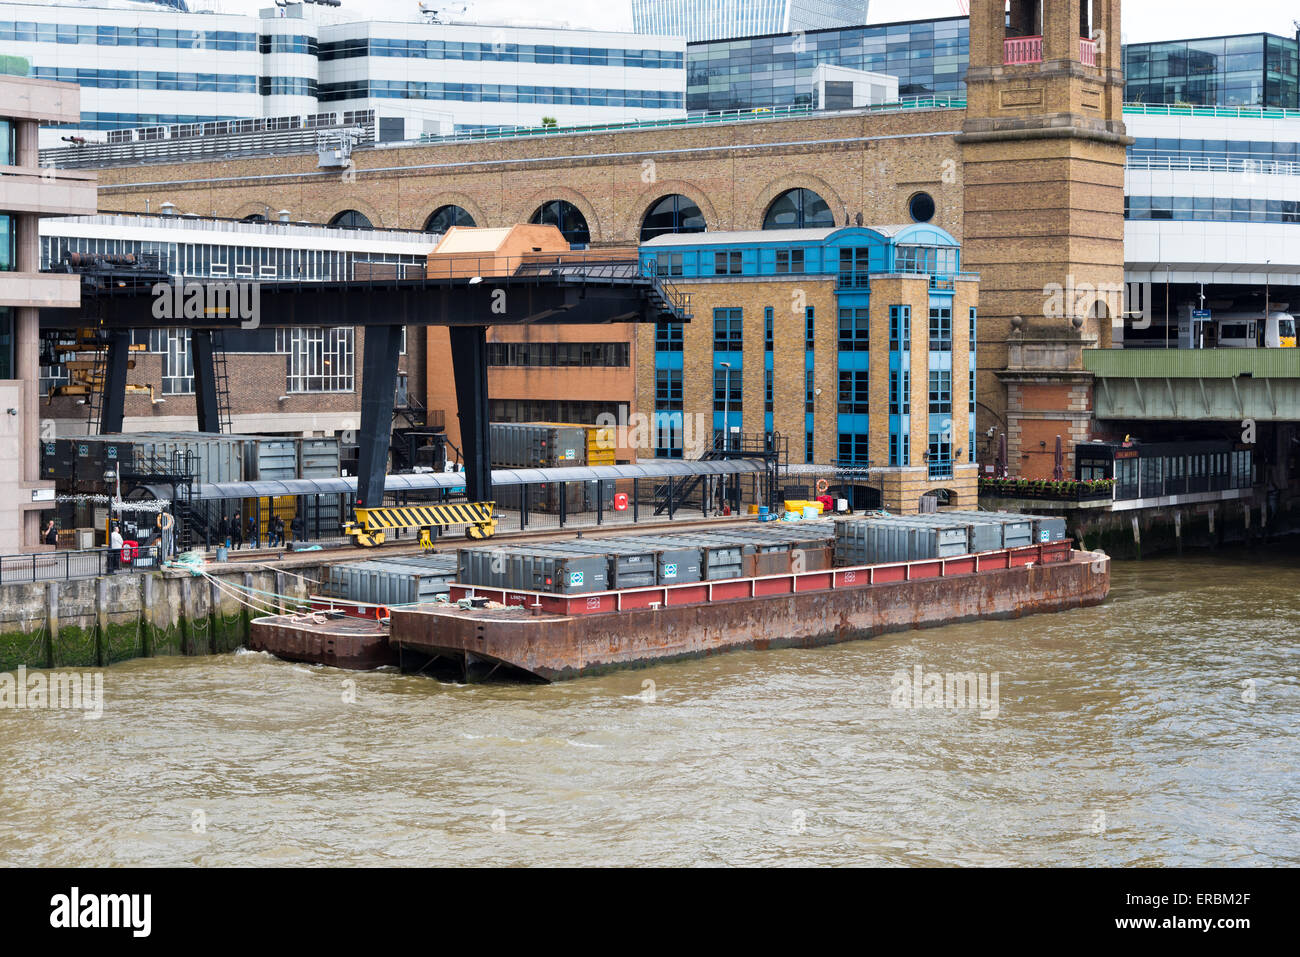 Waste disposal site next to Cannon Street Station, London.  Waste is loaded onto barges for transport down the Thames. - Stock Image